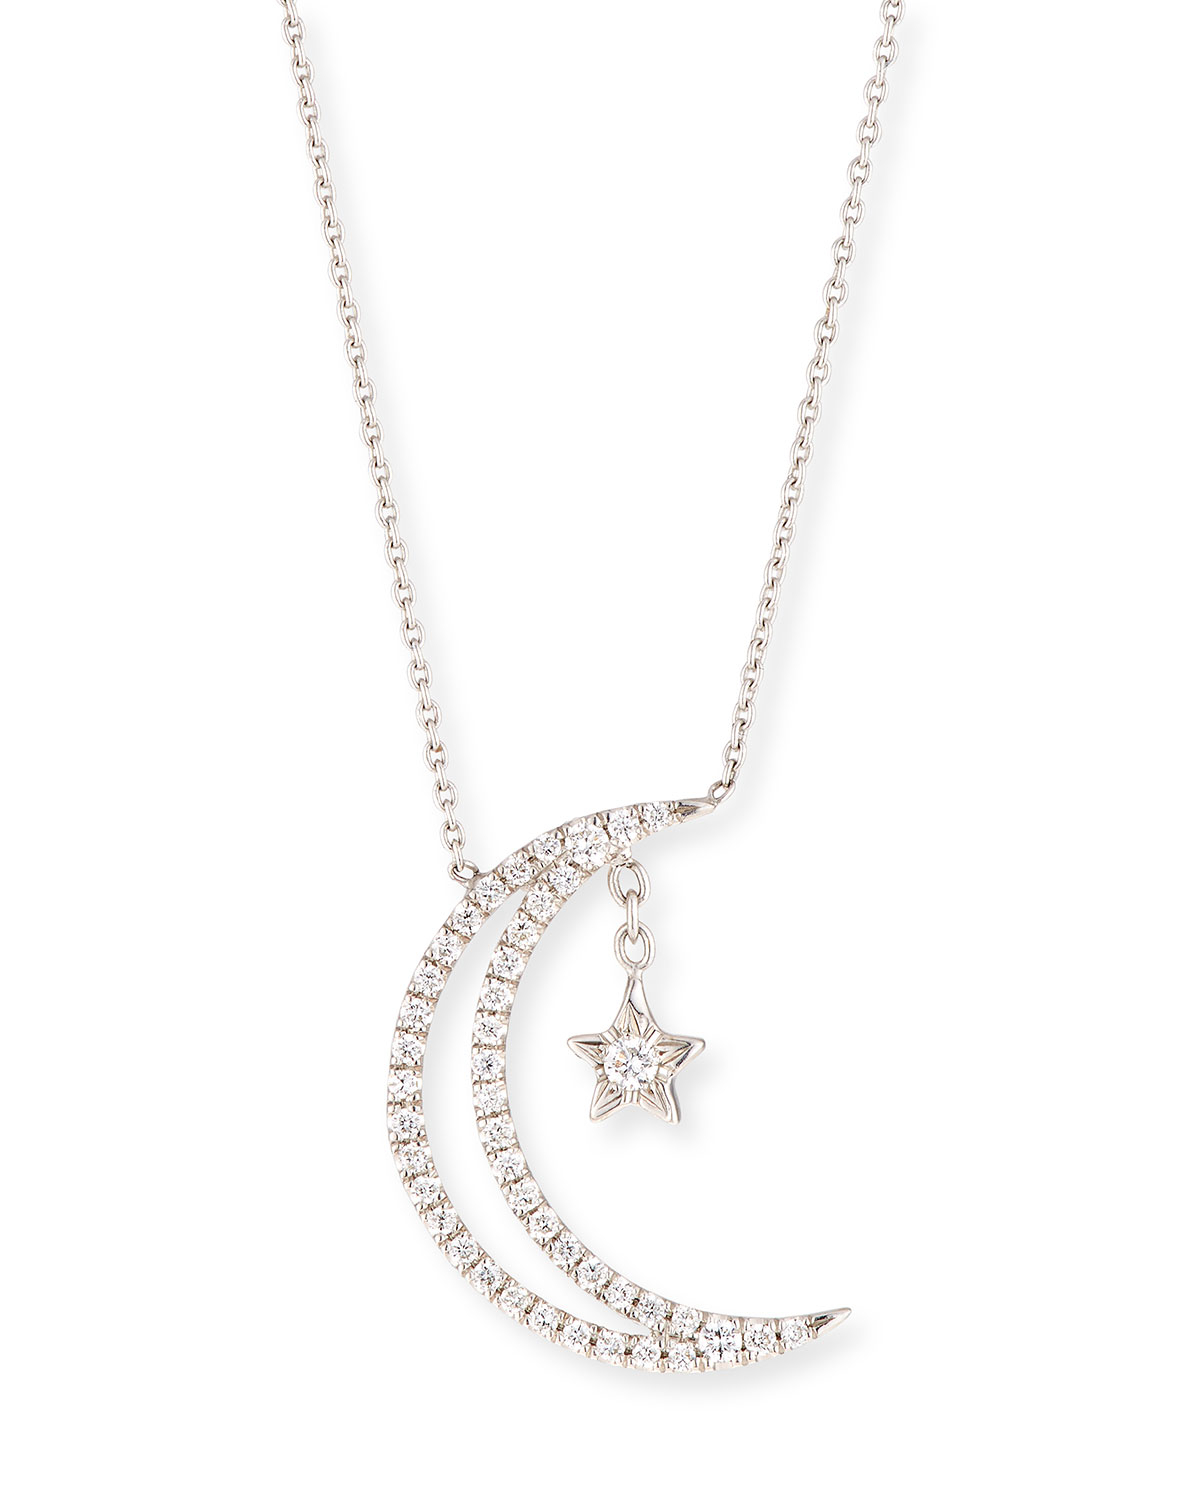 18K Half Moon & Star Pendant Necklace W/ Diamonds Pertaining To Best And Newest Polished Moon & Star Pendant Necklaces (View 6 of 25)